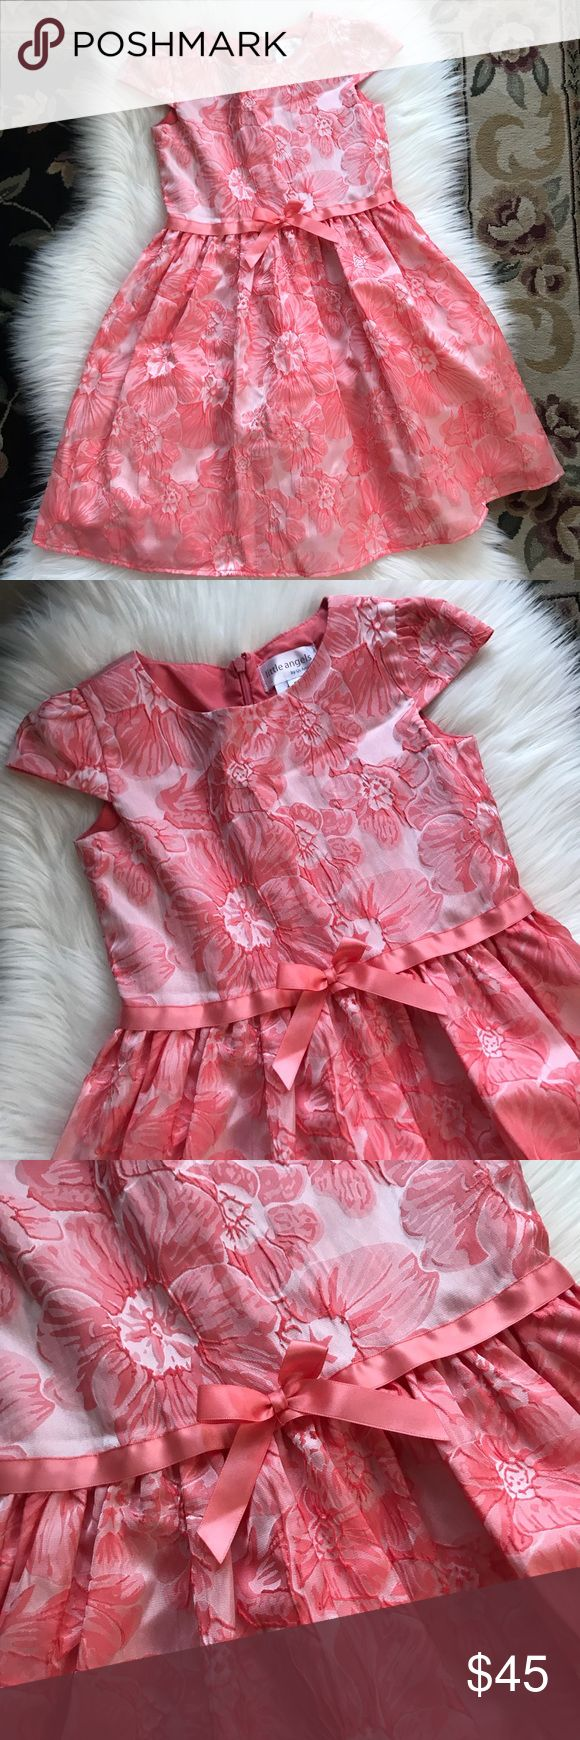 "US Angels Girls Flower Print Dress Size 7 Little Angels by US Angels Peach Color Flower Print Girls Dress Size 7.  100% Polyester. Worn once. Back zipper. Ties in the back. 27"" approximately Shoulder to hem. Formal dress. Party dress. Us Angels Dresses"